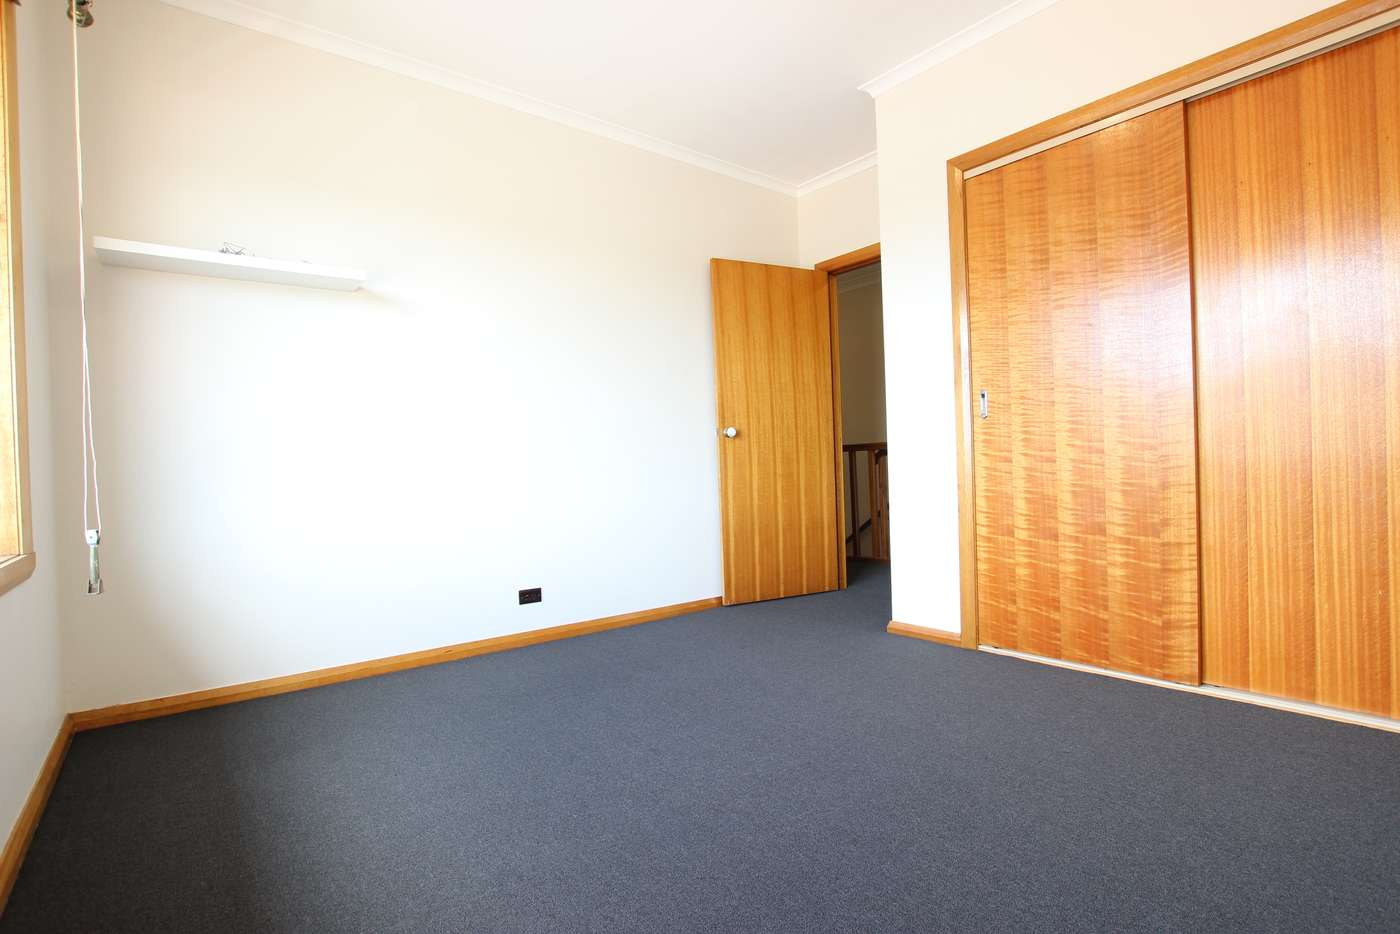 Seventh view of Homely apartment listing, 2/86 McBryde Street, Fawkner VIC 3060